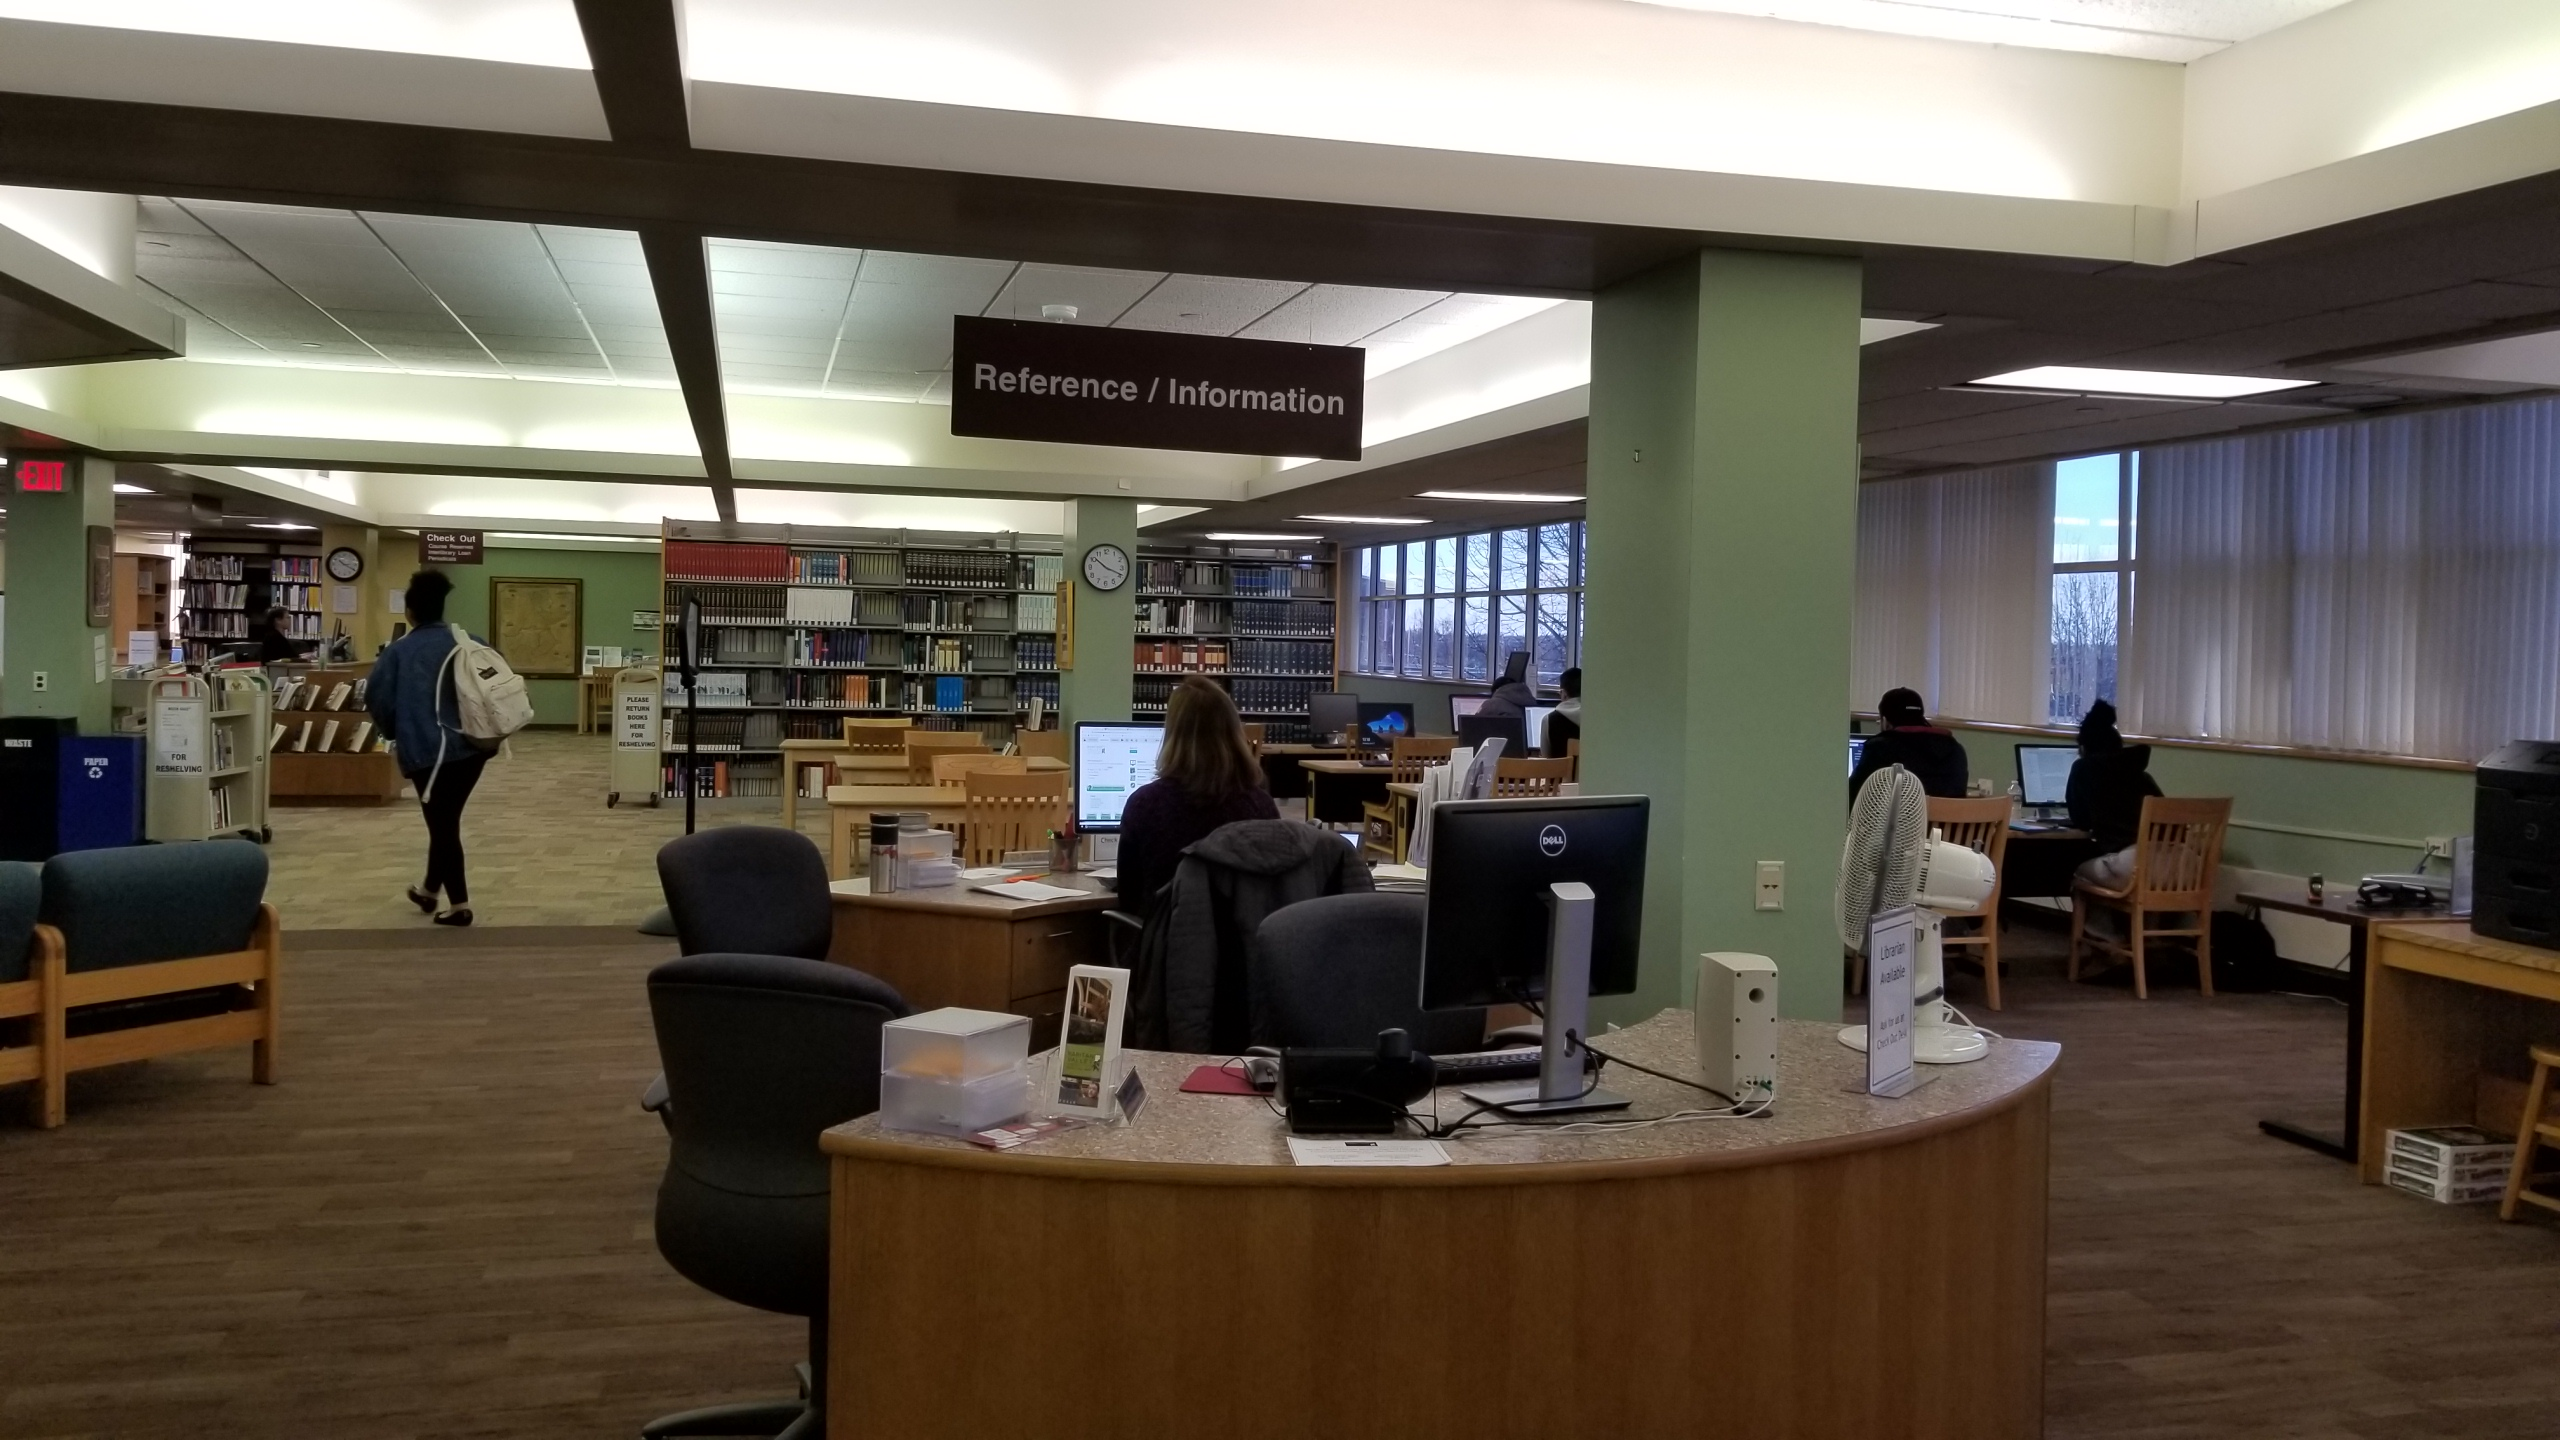 Reference/Information desks on first floor